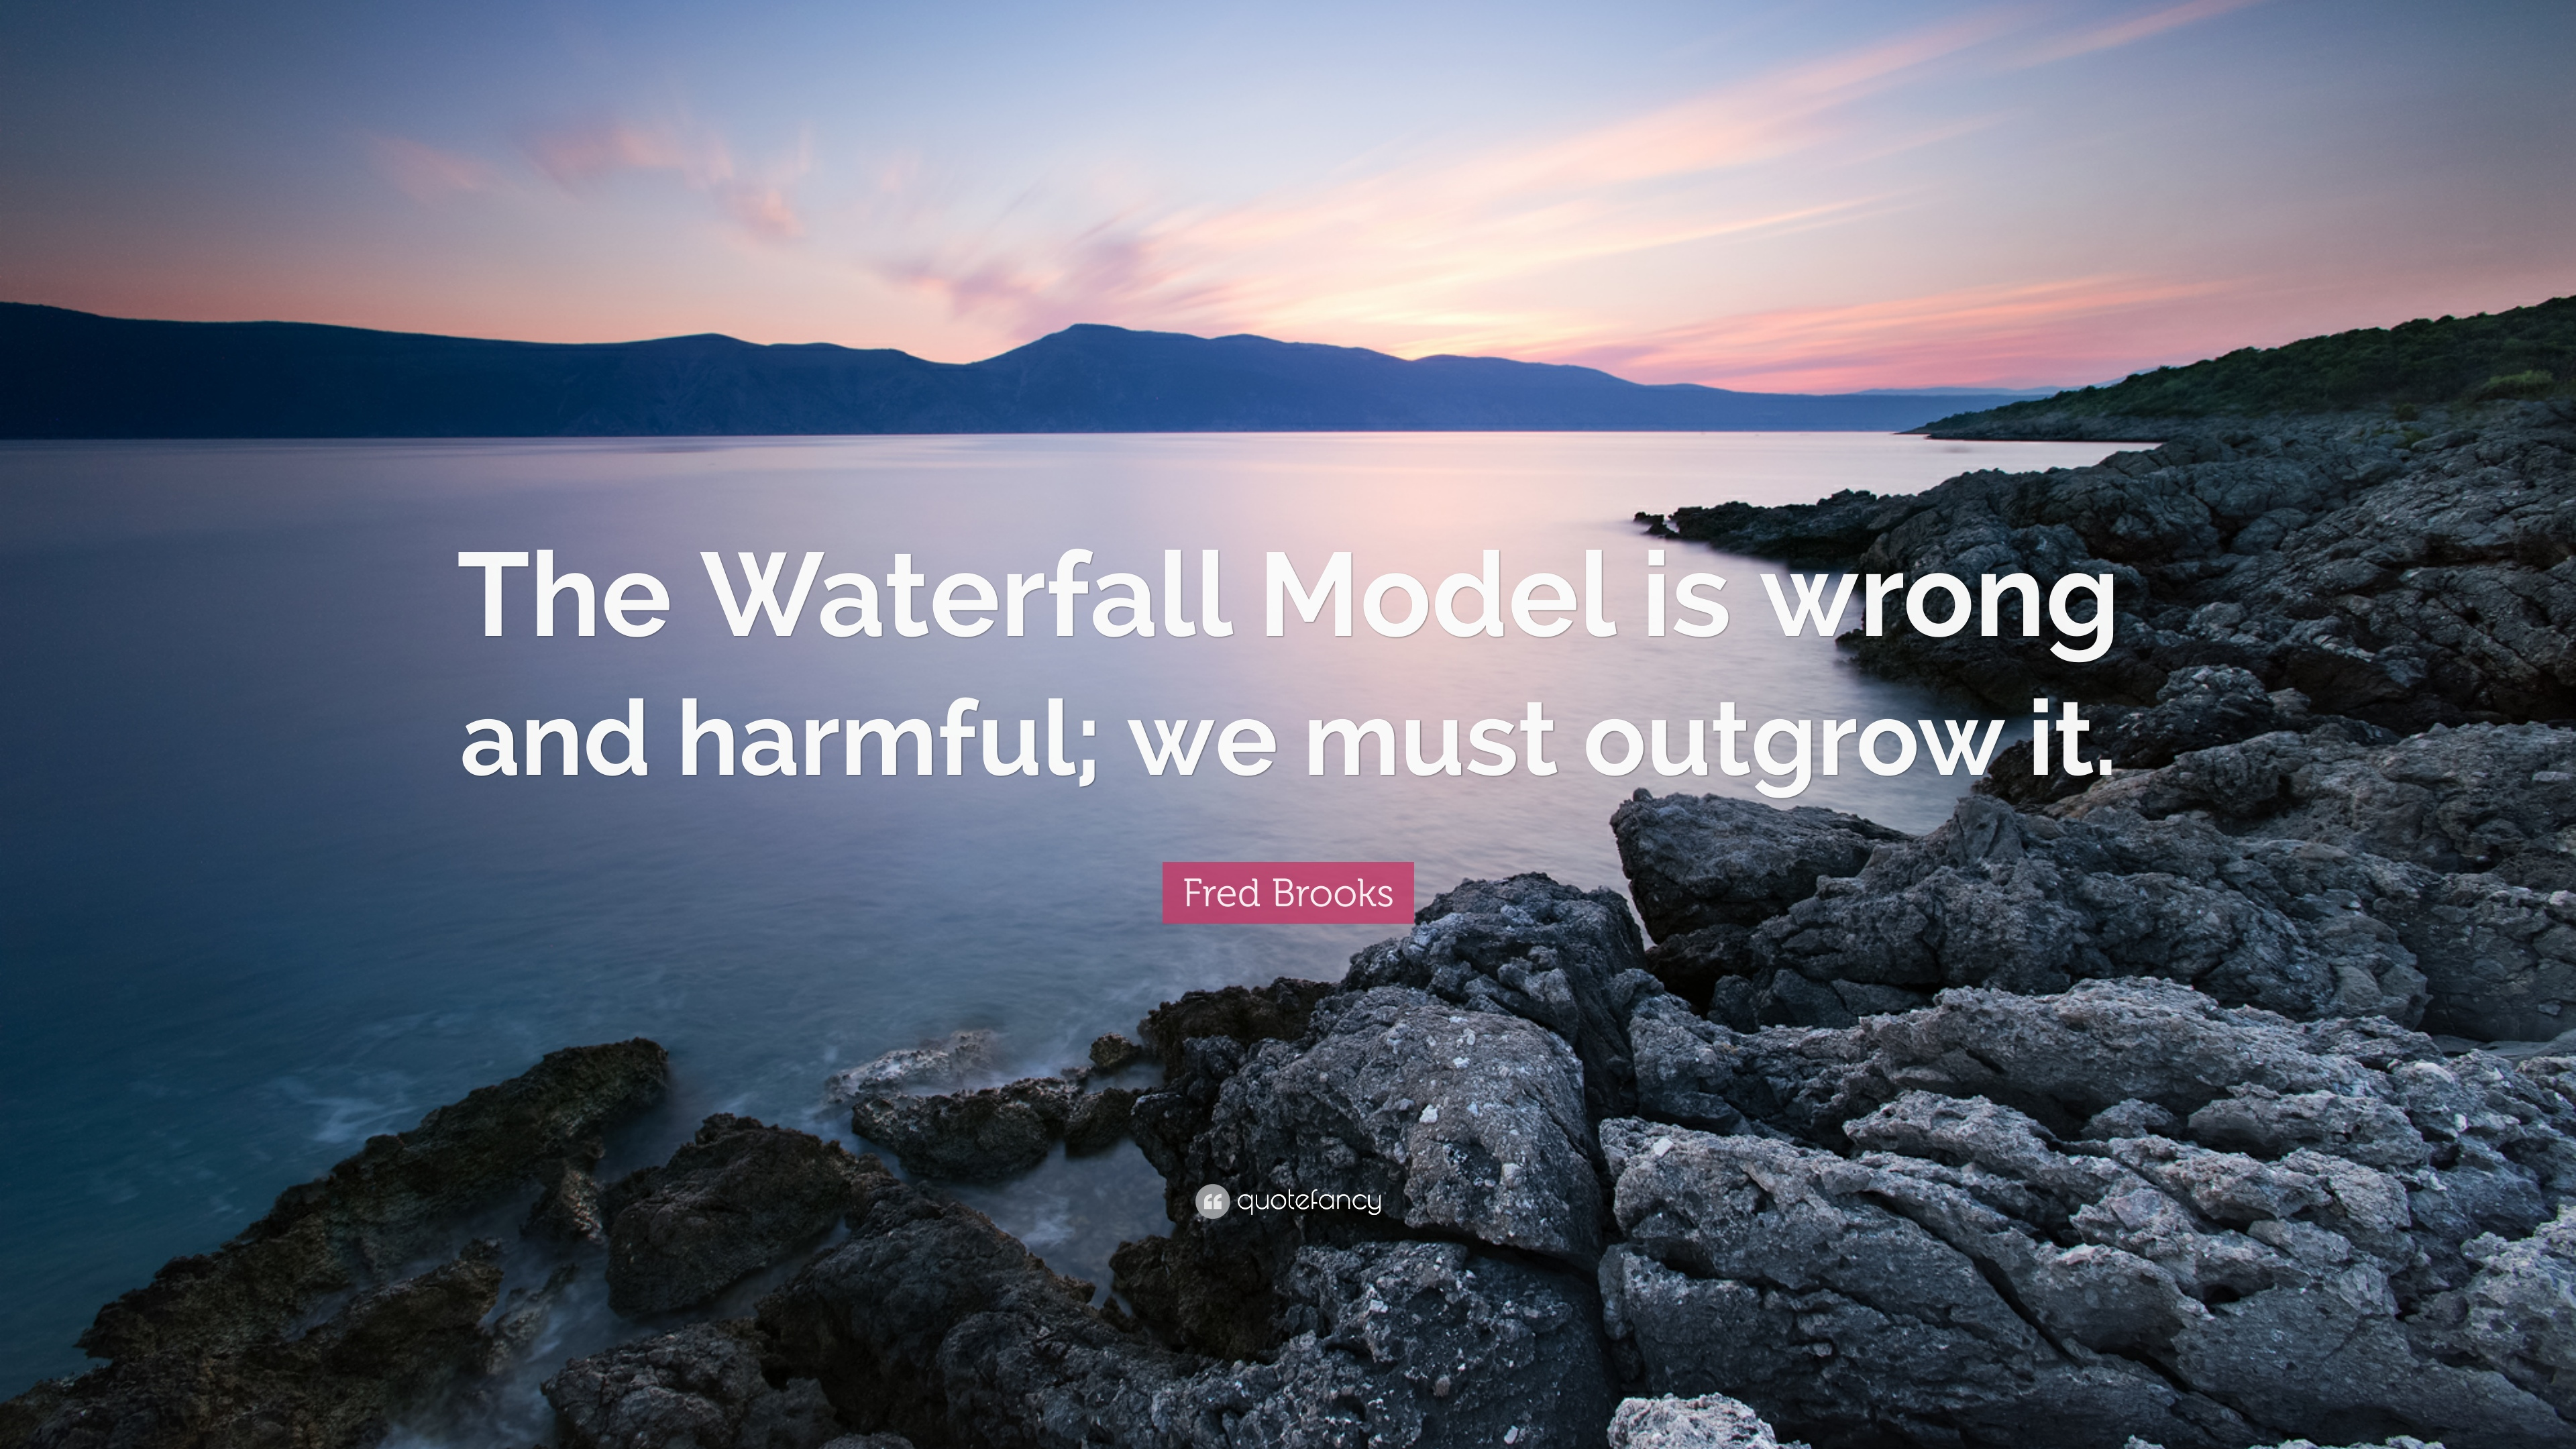 Fred brooks quote the waterfall model is wrong and harmful we must outgrow